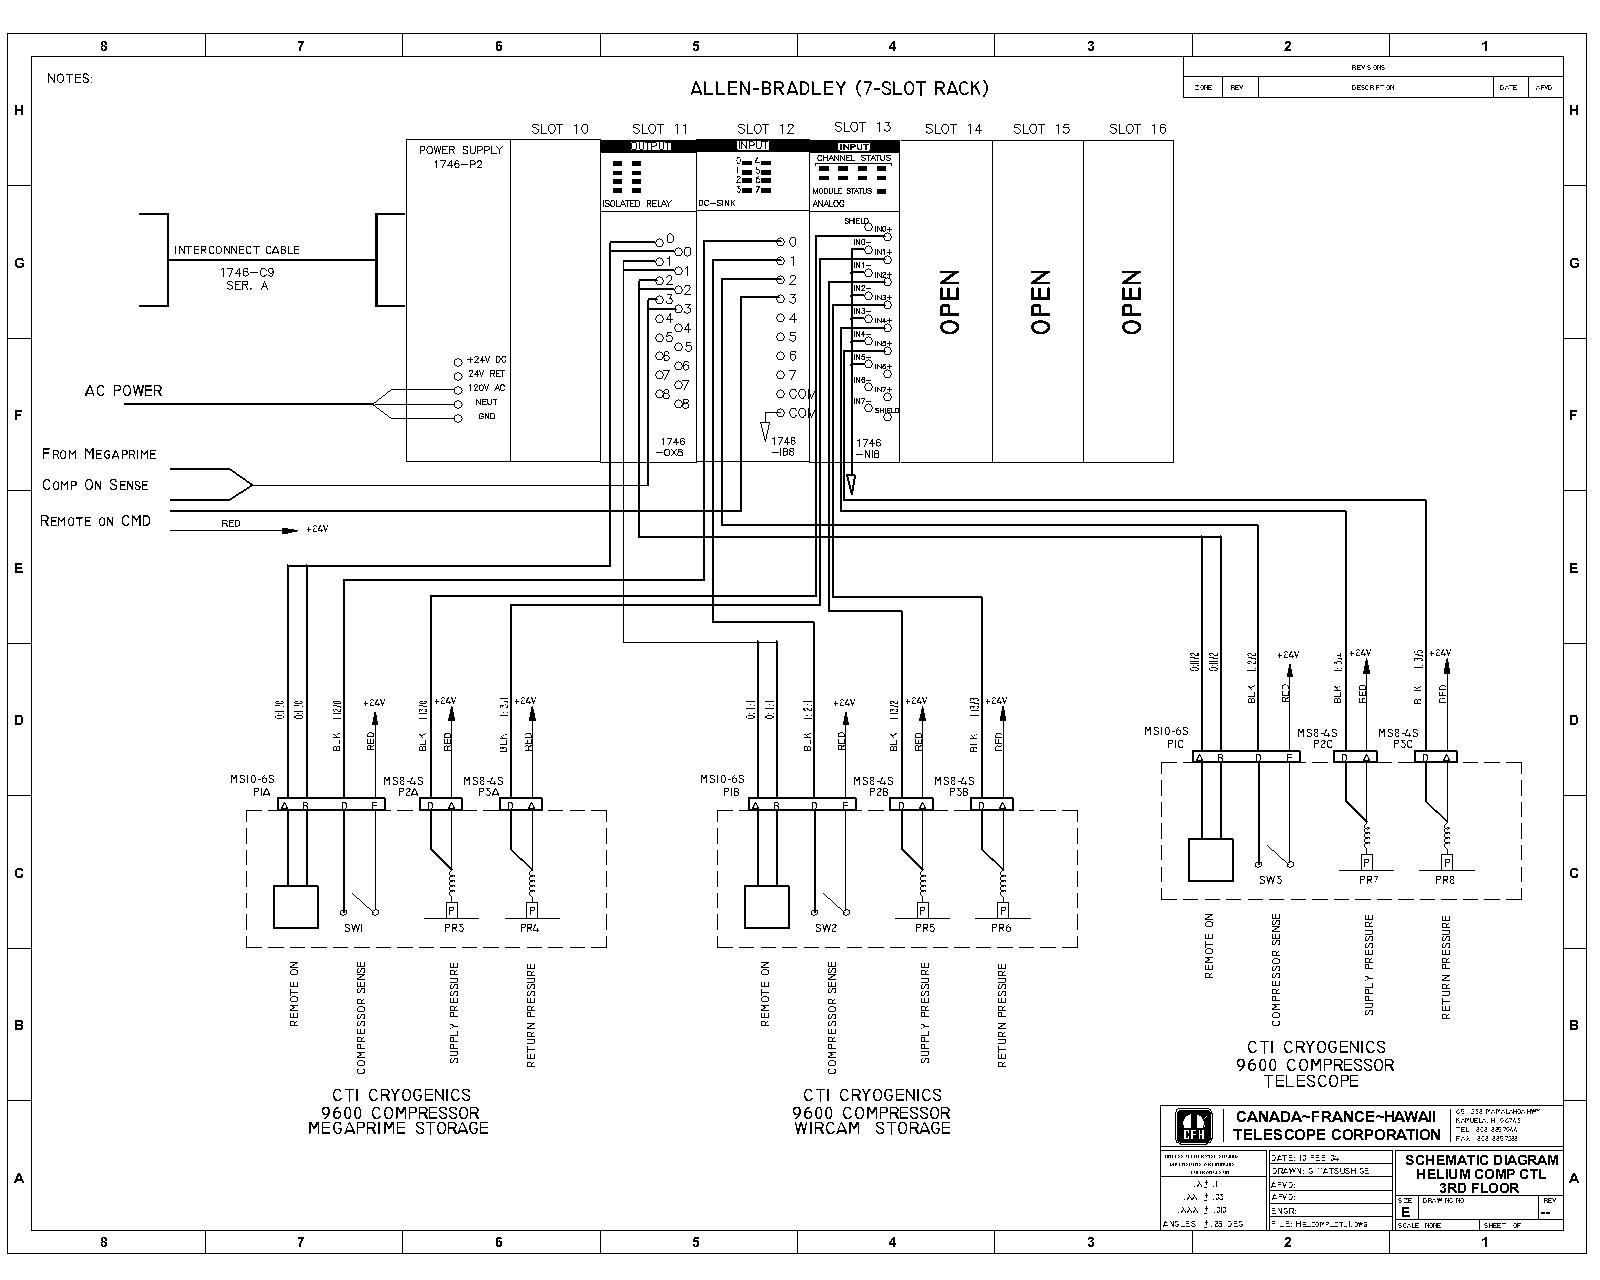 Wiring Diagram Plc Omron With Images Diagram Drawing Software